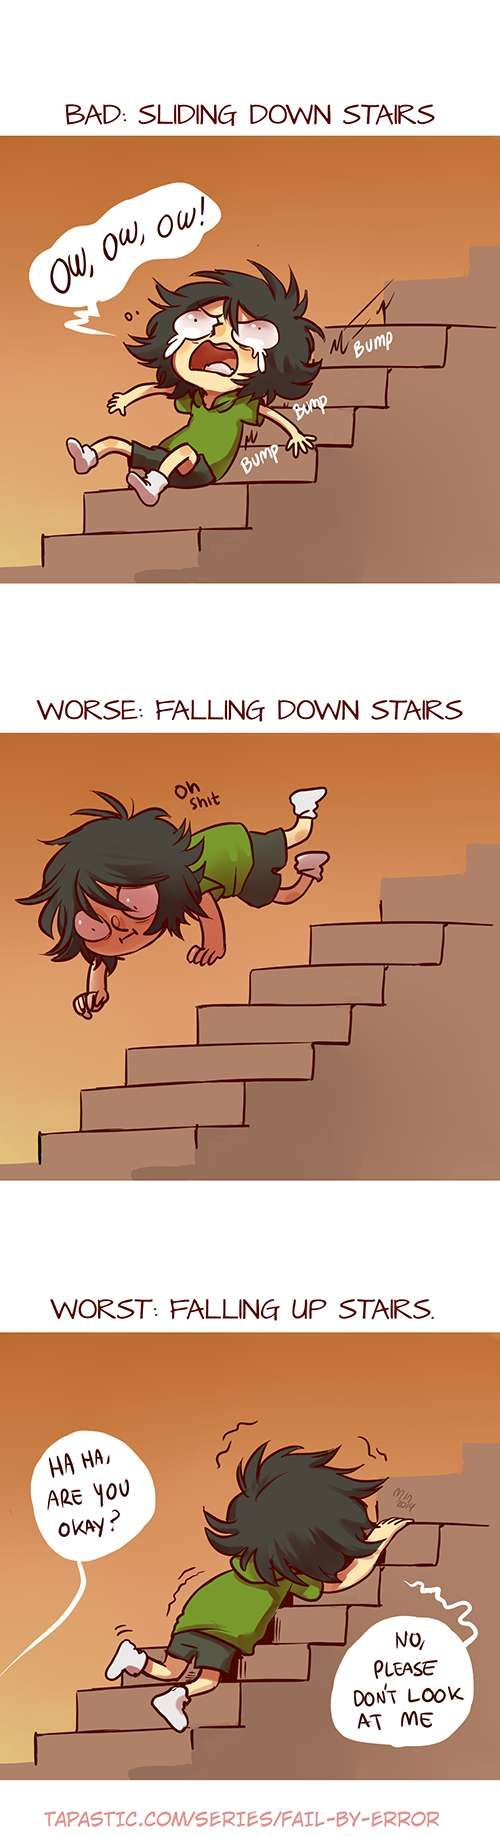 Fail by Error :: Stairs | Tapastic - image 1